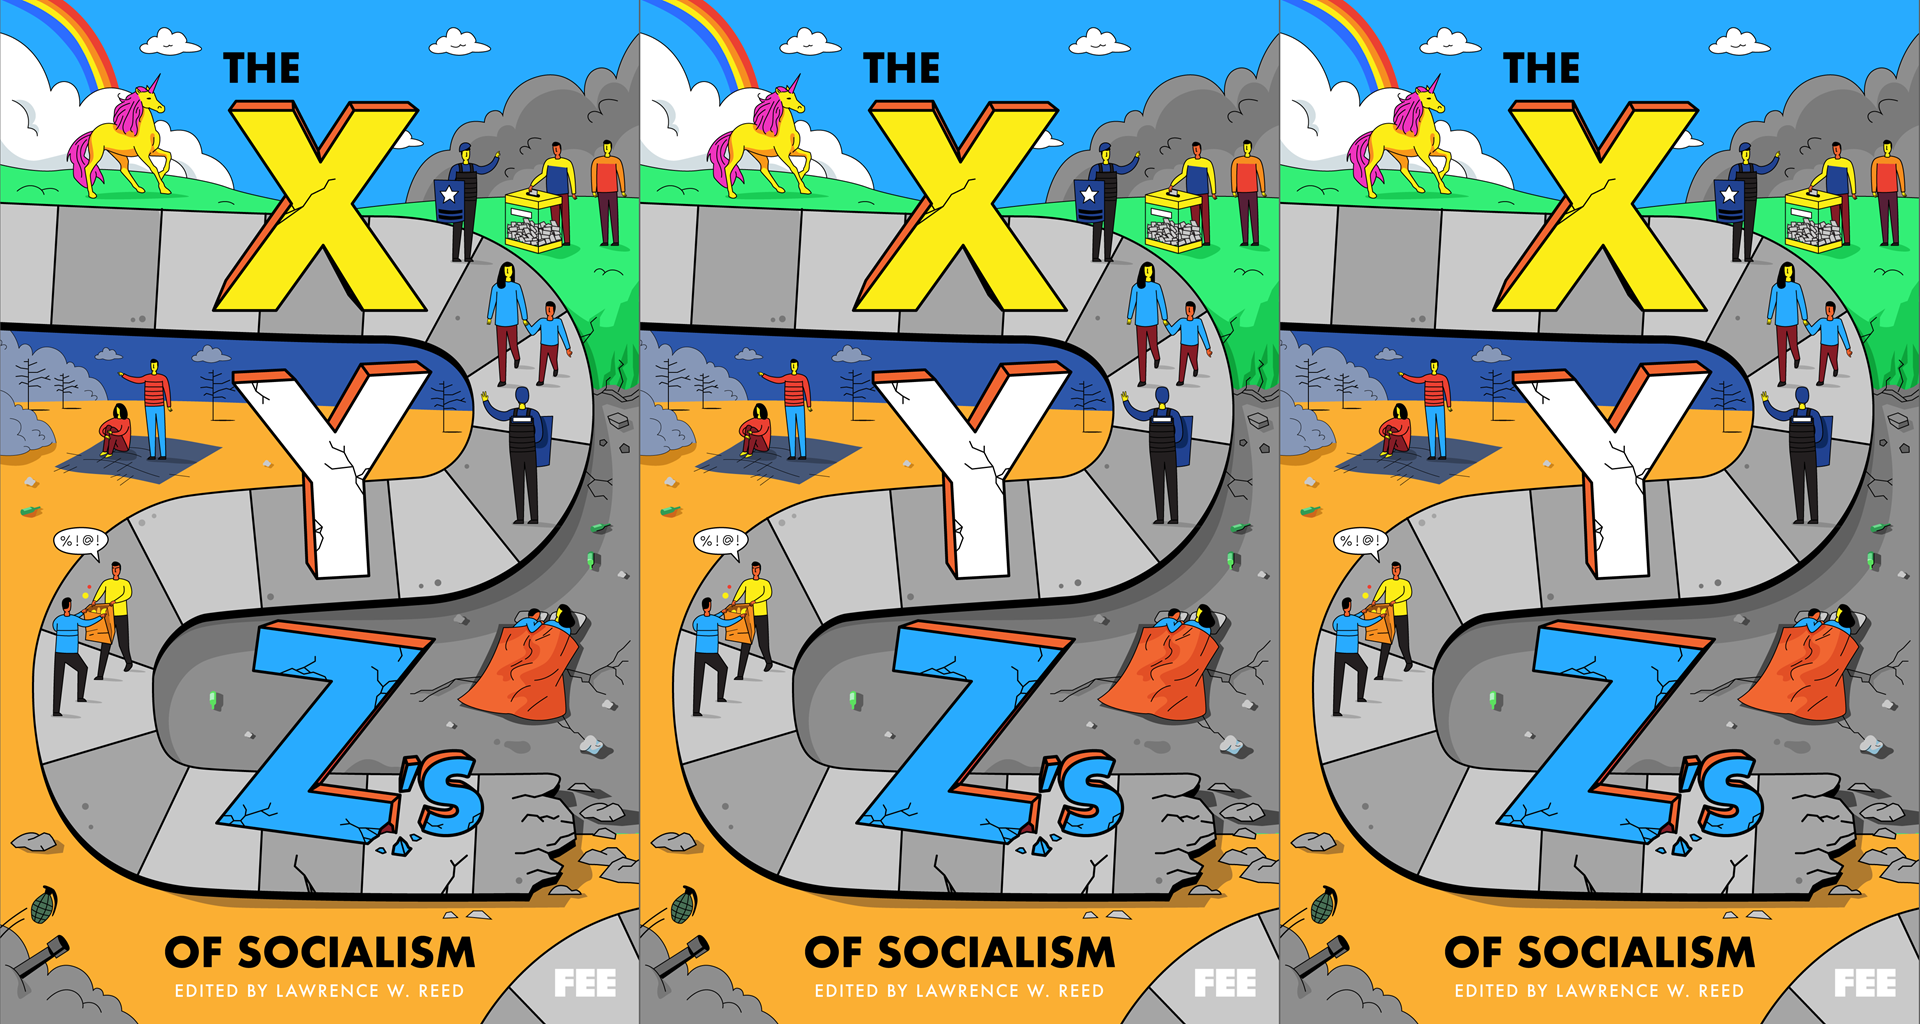 0e06ba9e77af The XYZ s of Socialism - Foundation for Economic Education